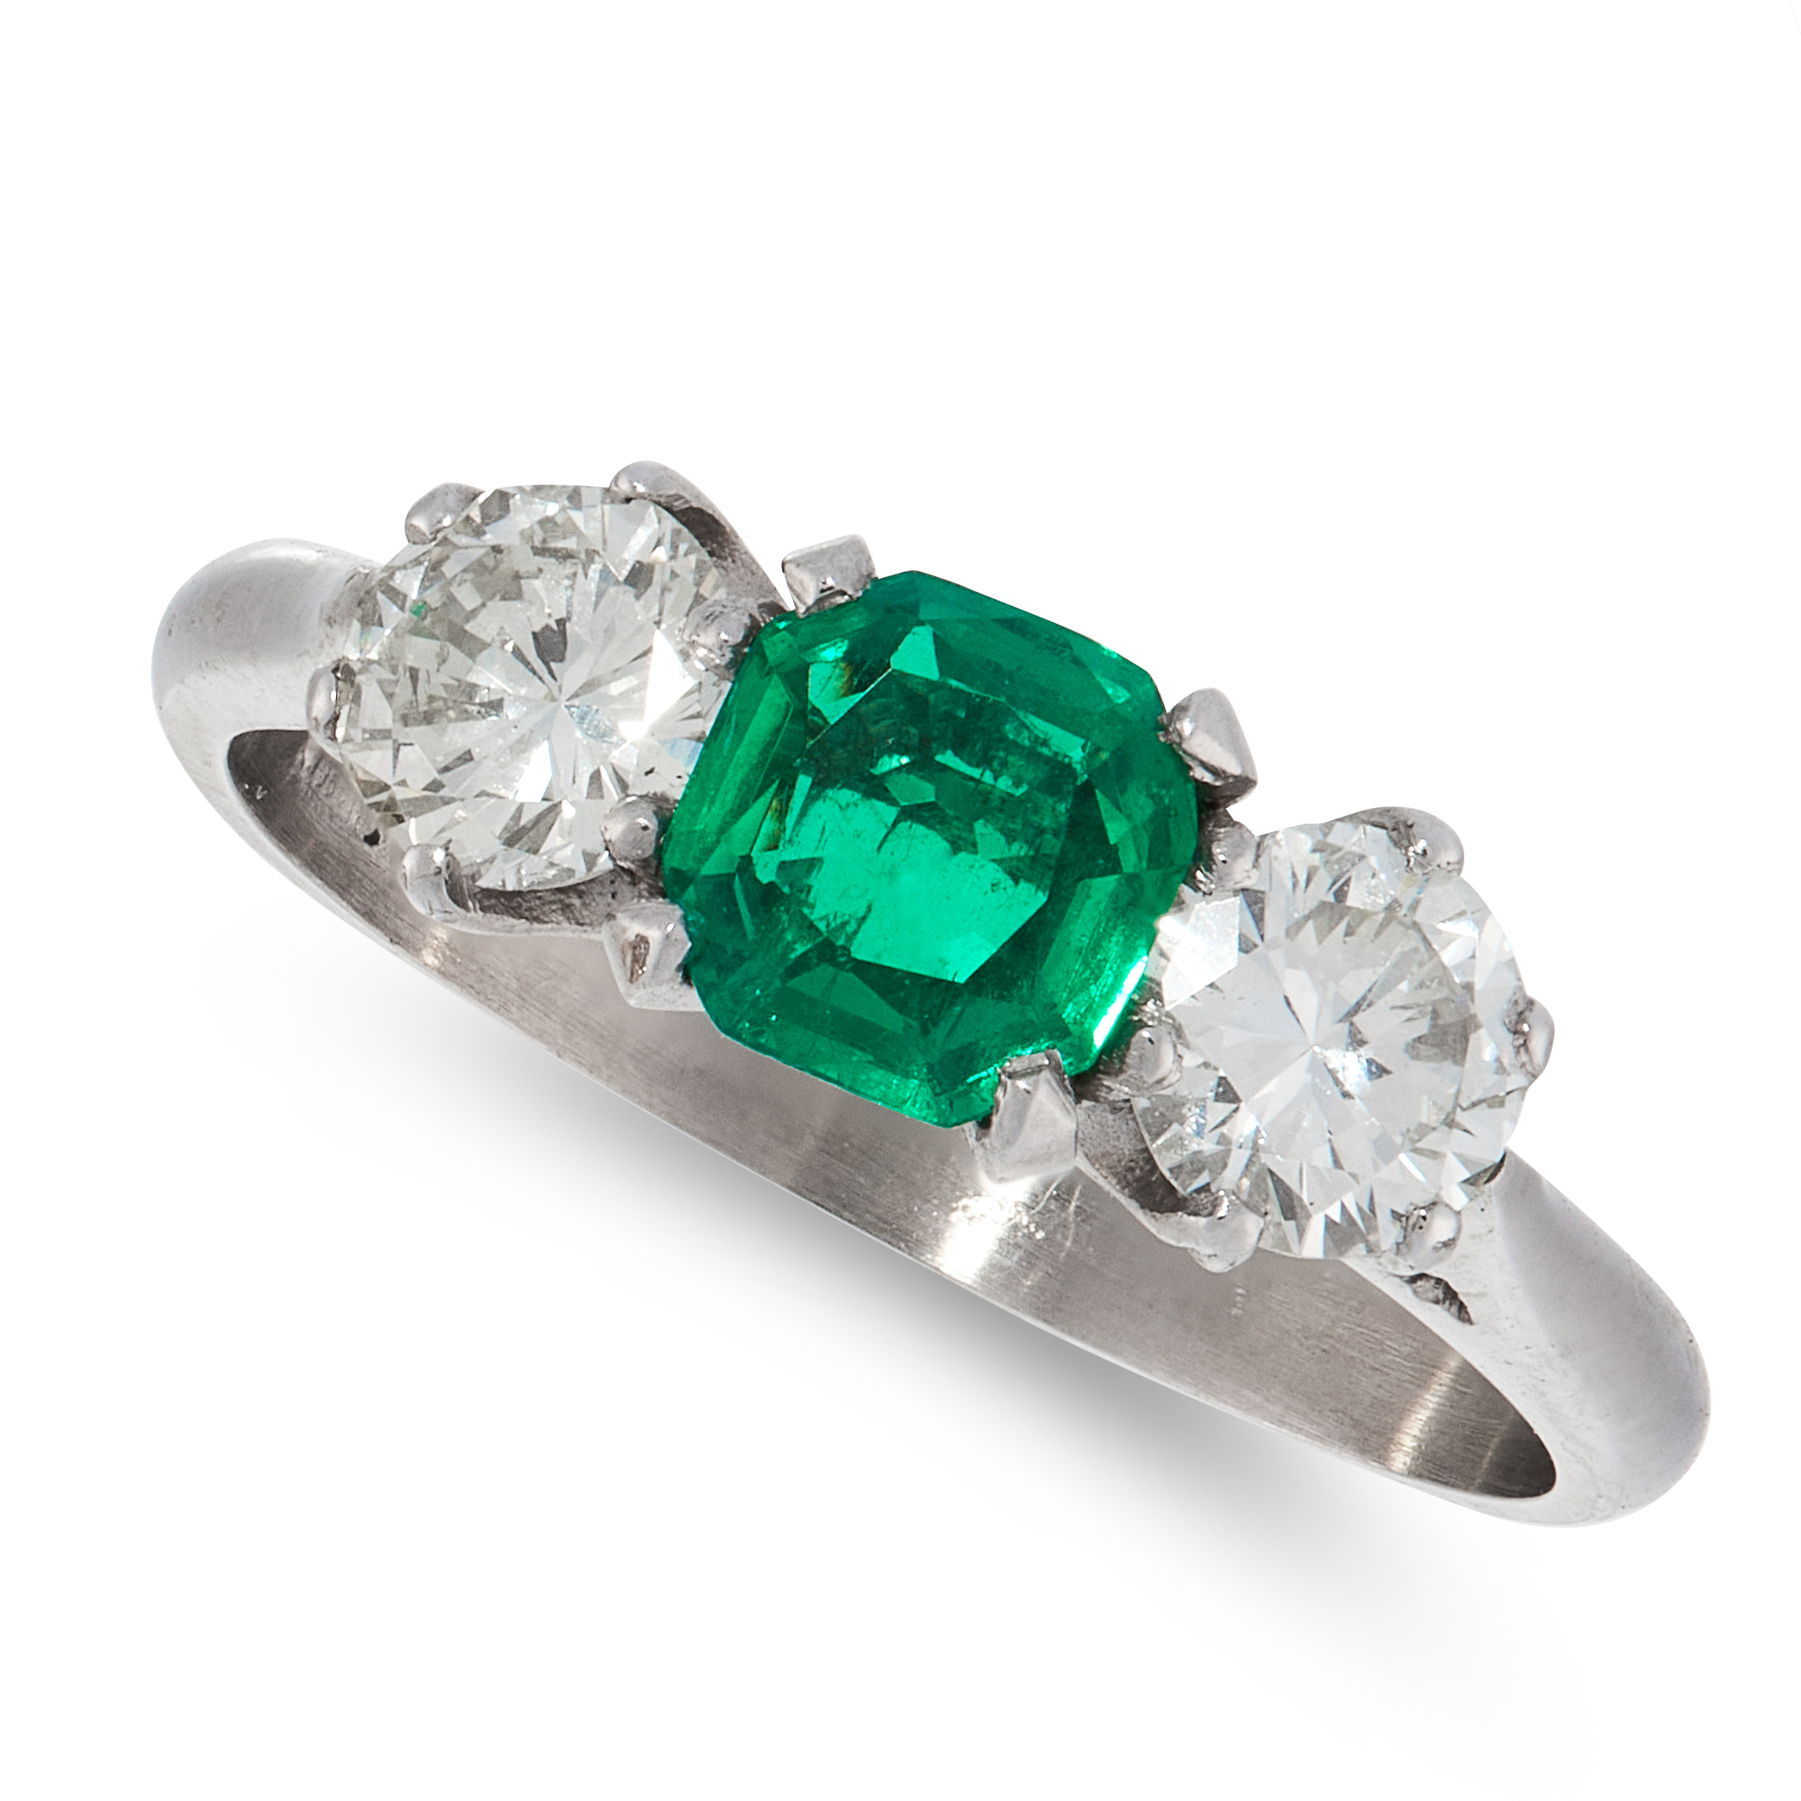 A COLOMBIAN EMERALD AND DIAMOND THREE STONE RING set with an emerald cut emerald of 0.91 carats